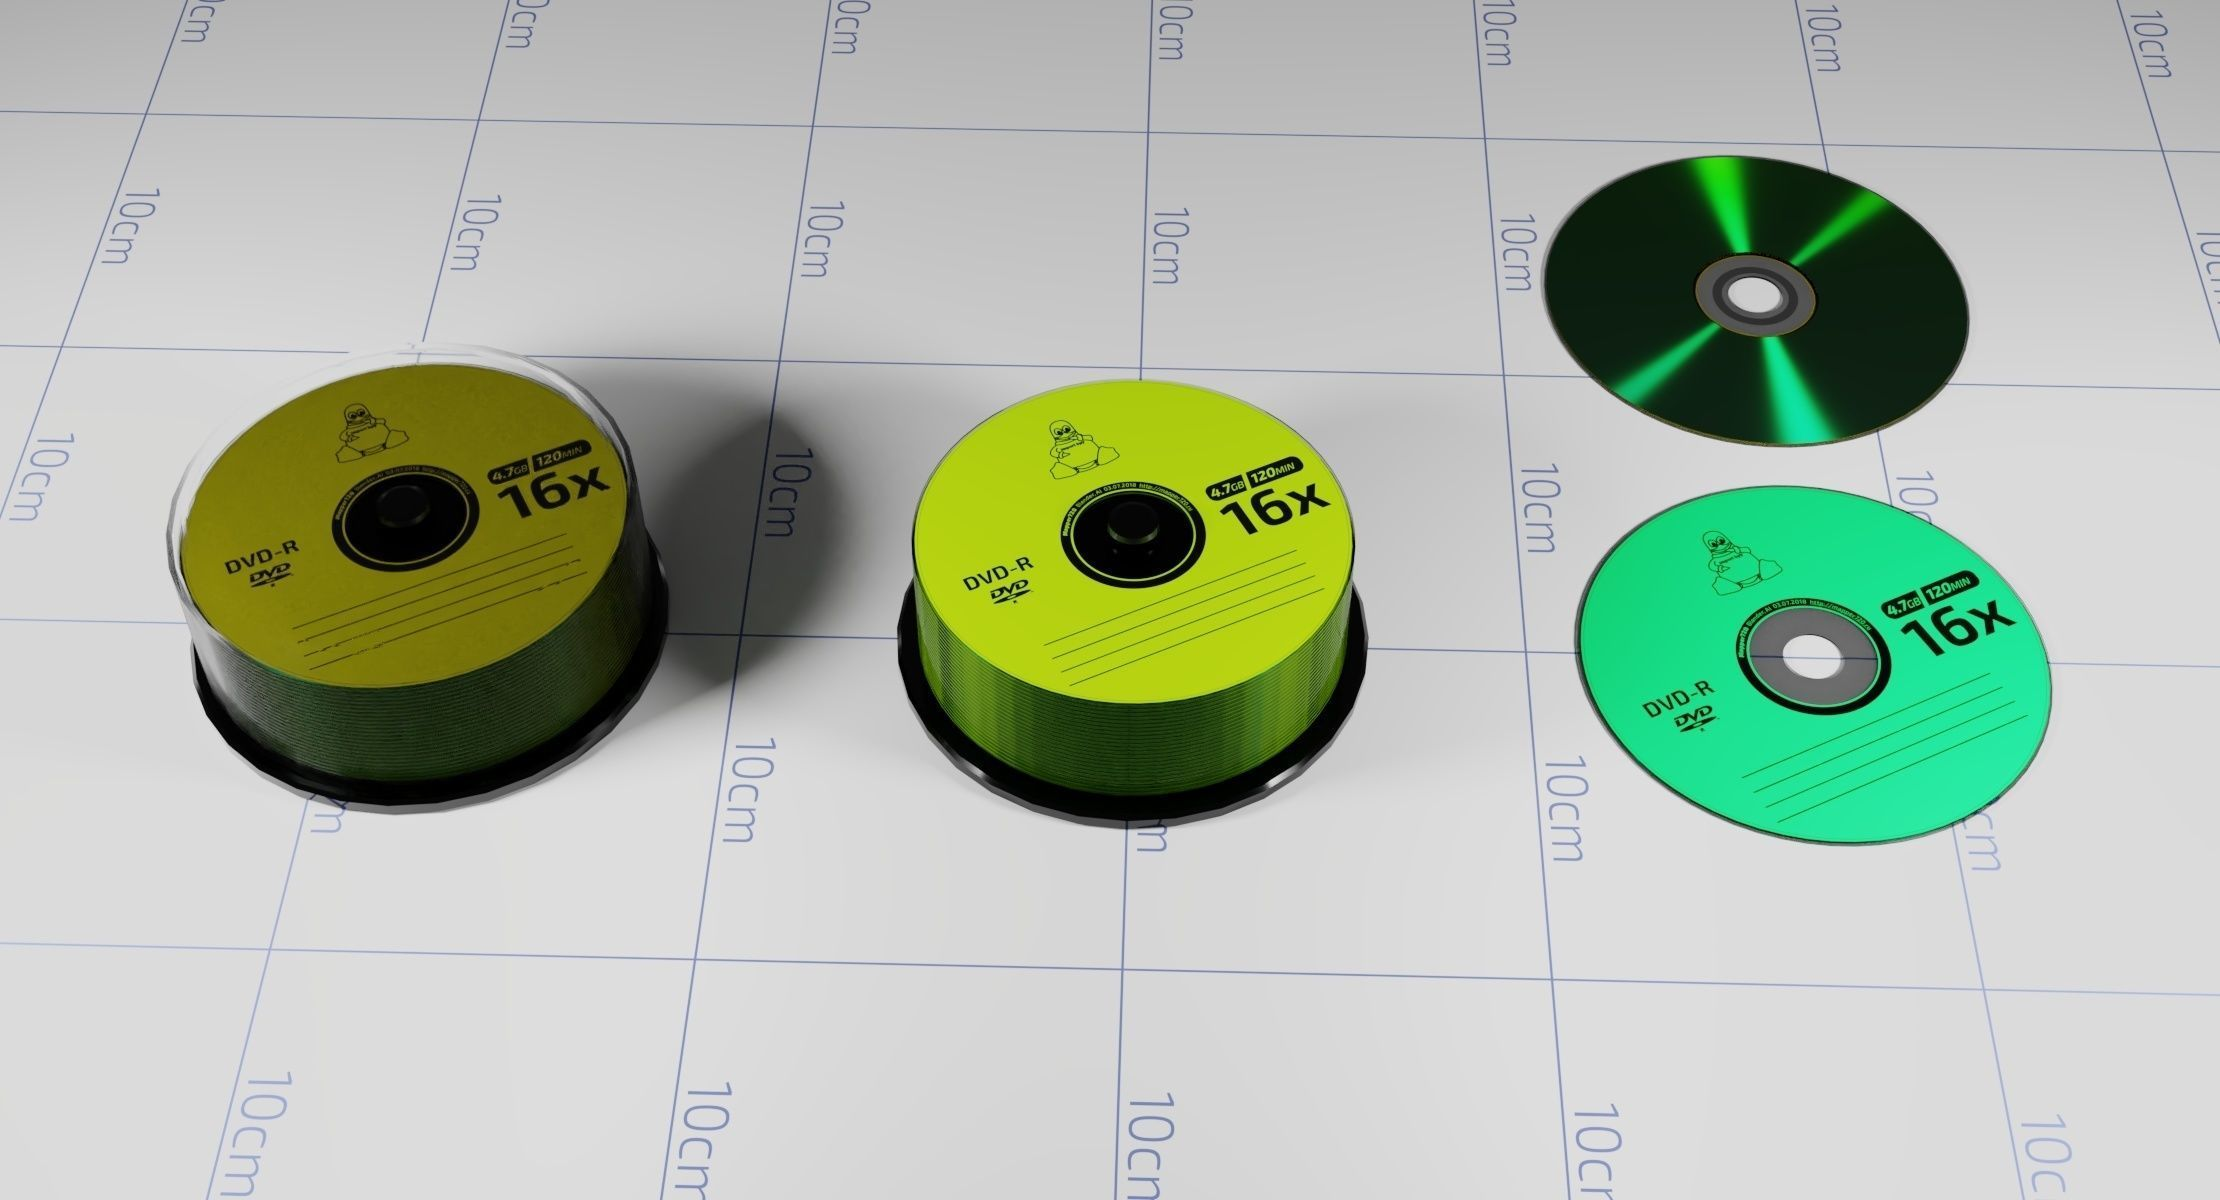 A Collection of Compact-disks